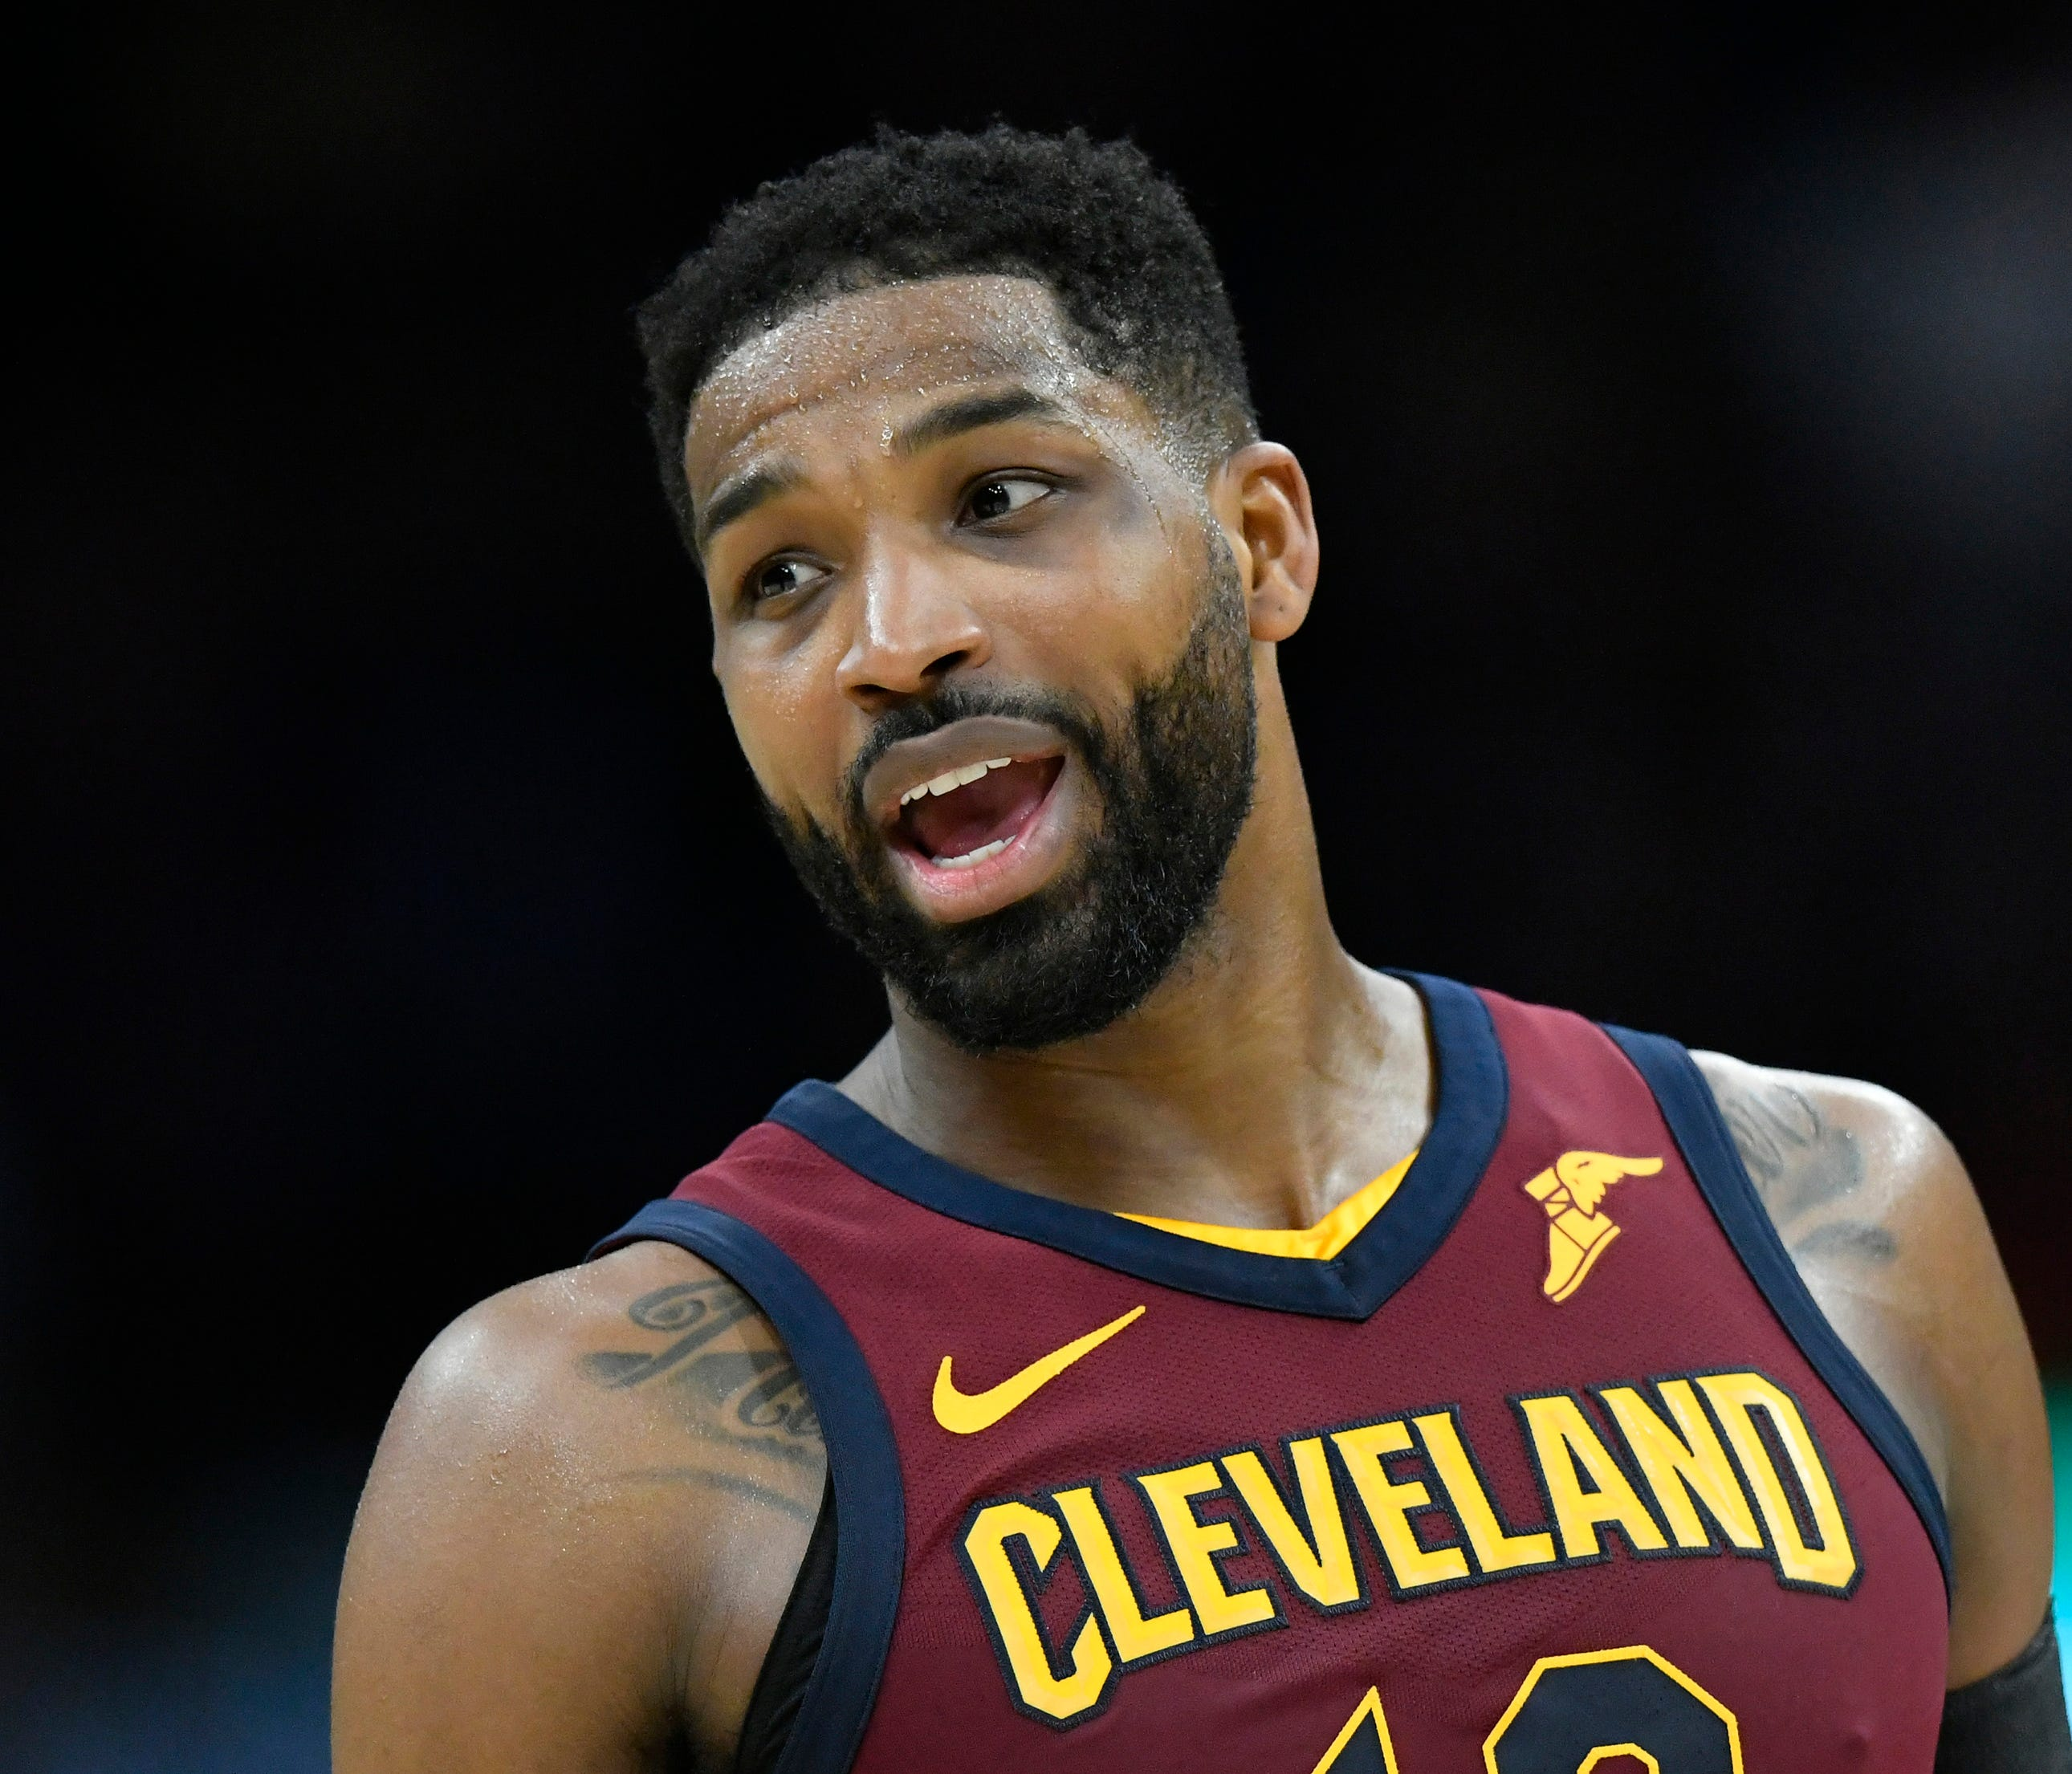 Apr 11, 2018; Cleveland, OH, USA; Cleveland Cavaliers center Tristan Thompson (13) reacts in the fourth quarter against the New York Knicks at Quicken Loans Arena. Mandatory Credit: David Richard-USA TODAY Sports ORG XMIT: USATSI-363439 ORIG FILE ID: